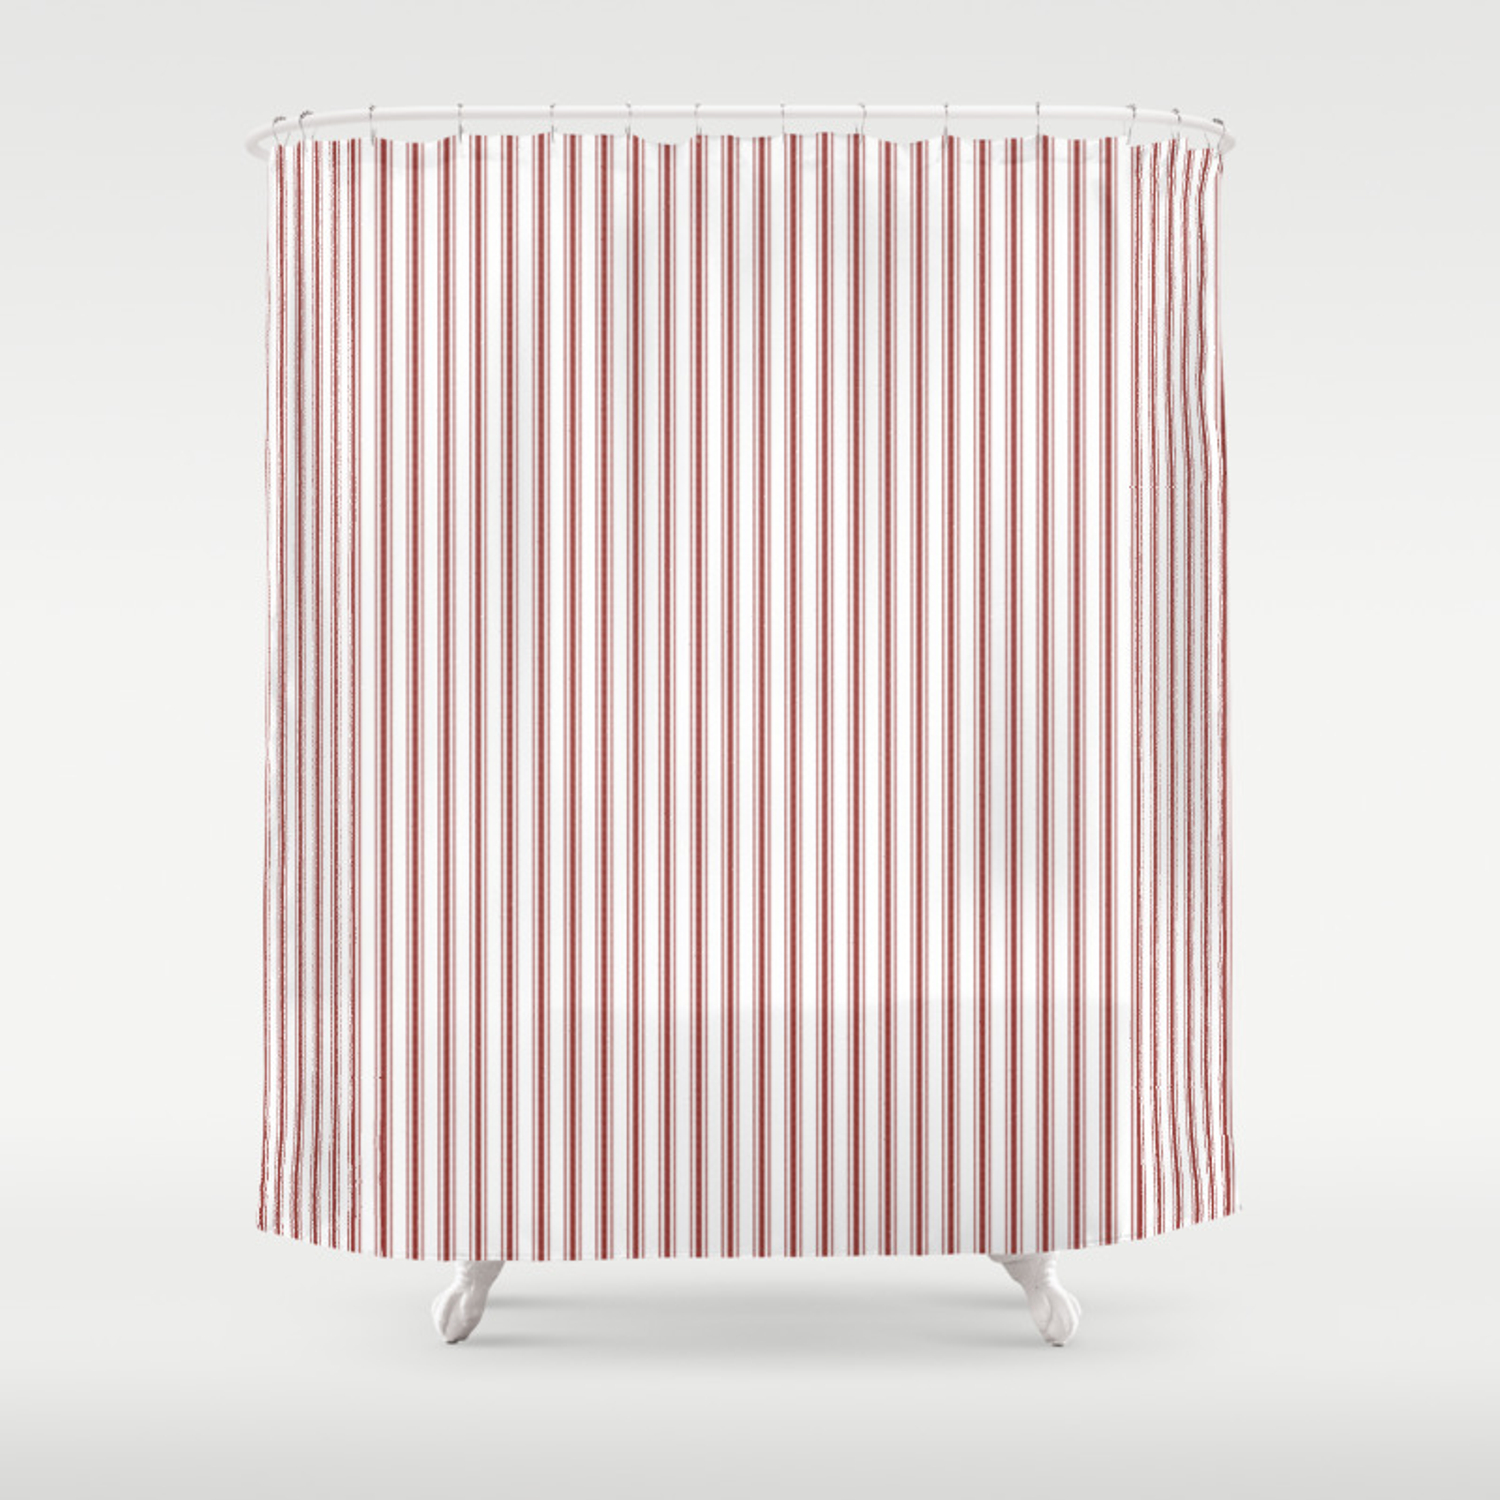 Vintage New England Shaker Barn Red Milk Paint Mattress Ticking Vertical Narrow Striped Shower Curtain